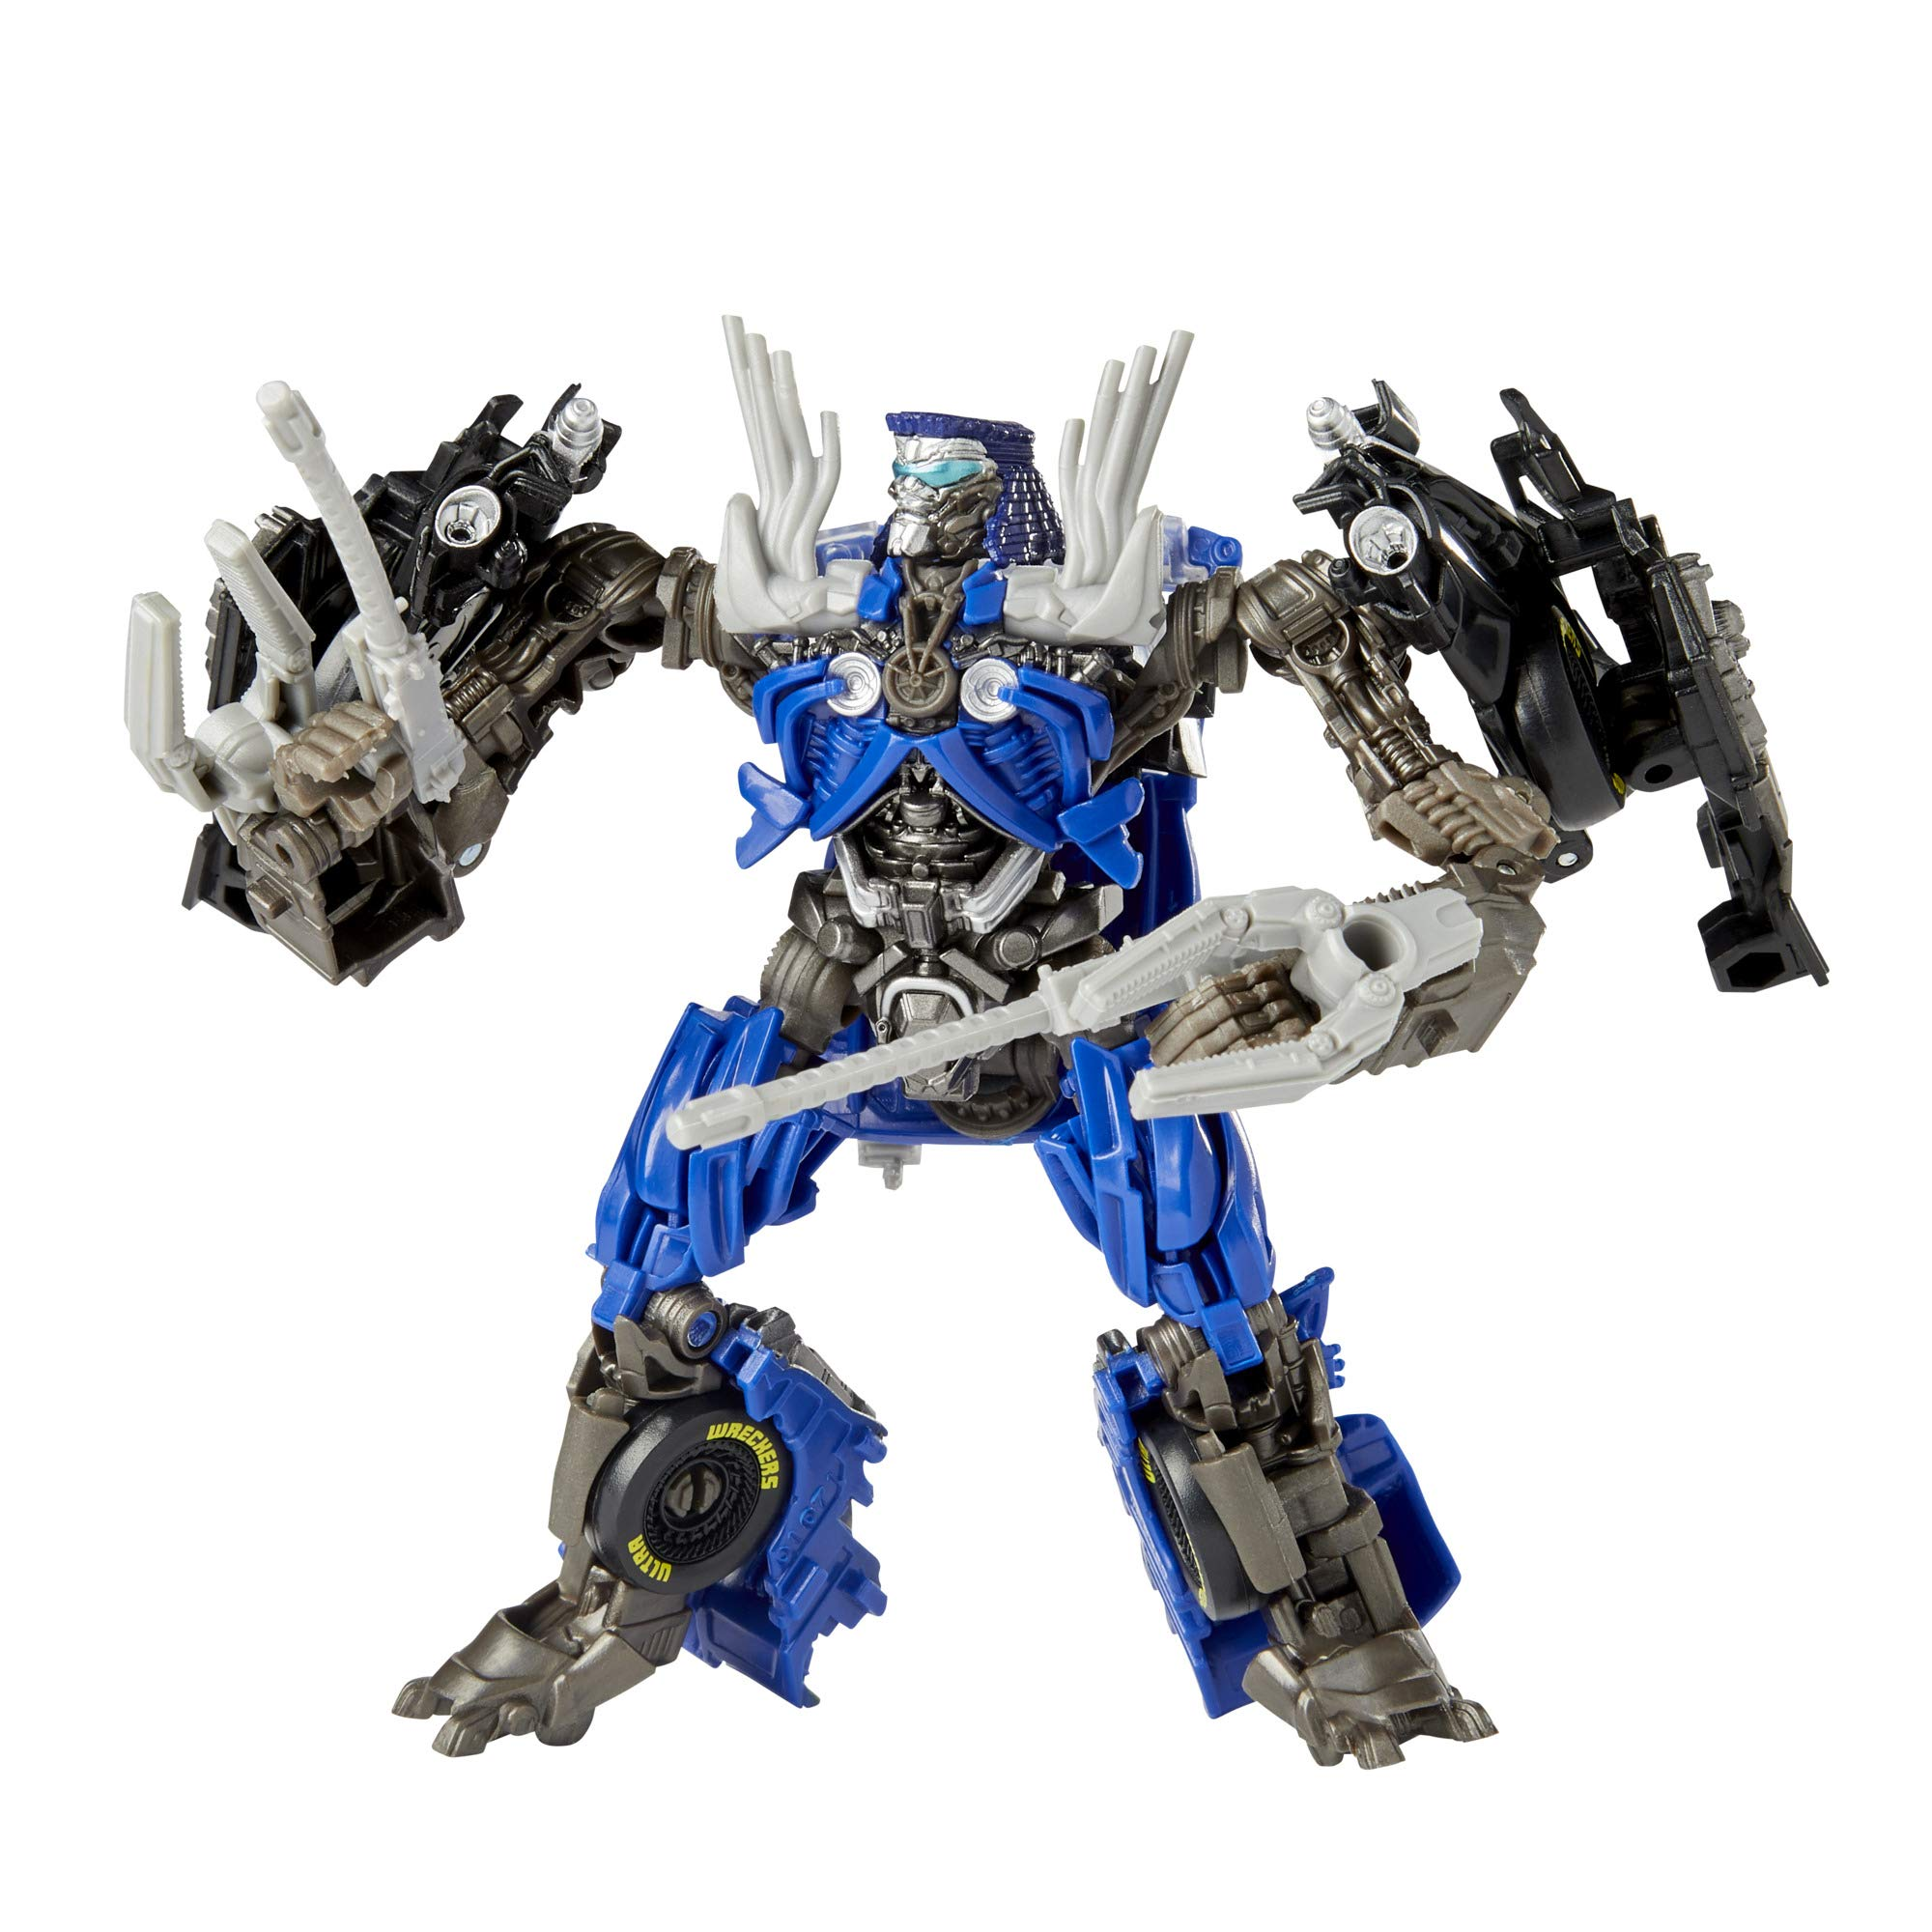 Transformers Toys Studio Series 63 Deluxe Class Transformers: Dark of The Moon Movie Topspin Action Figure - Kids Ages 8 and Up, 4.5-inch